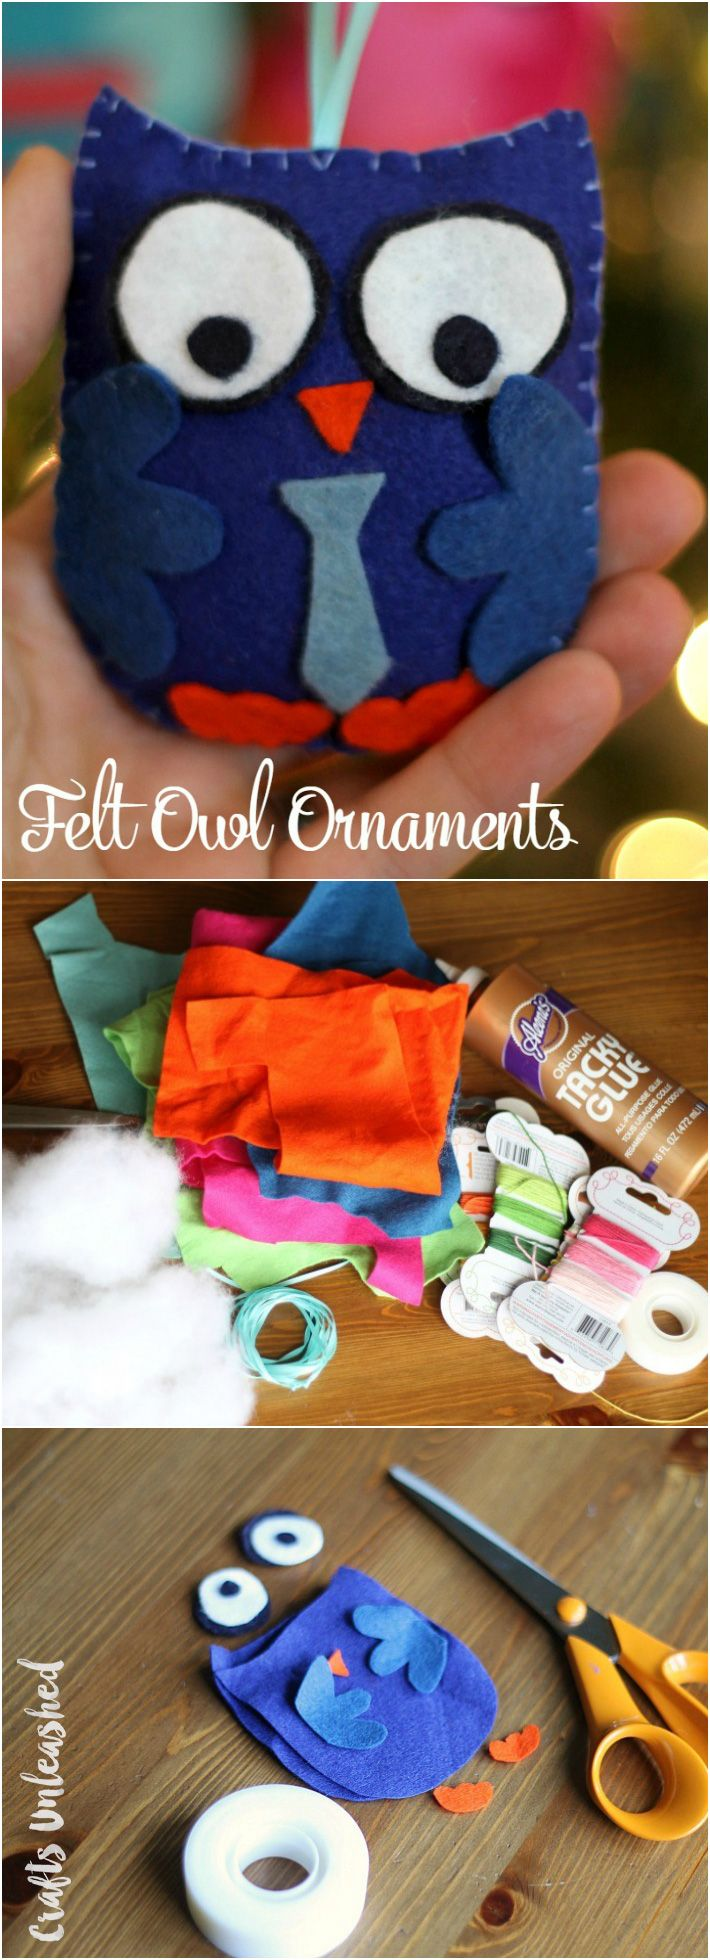 Design your own christmas ornaments - Diy Owl Ornaments Free Template Crafts Unleashed